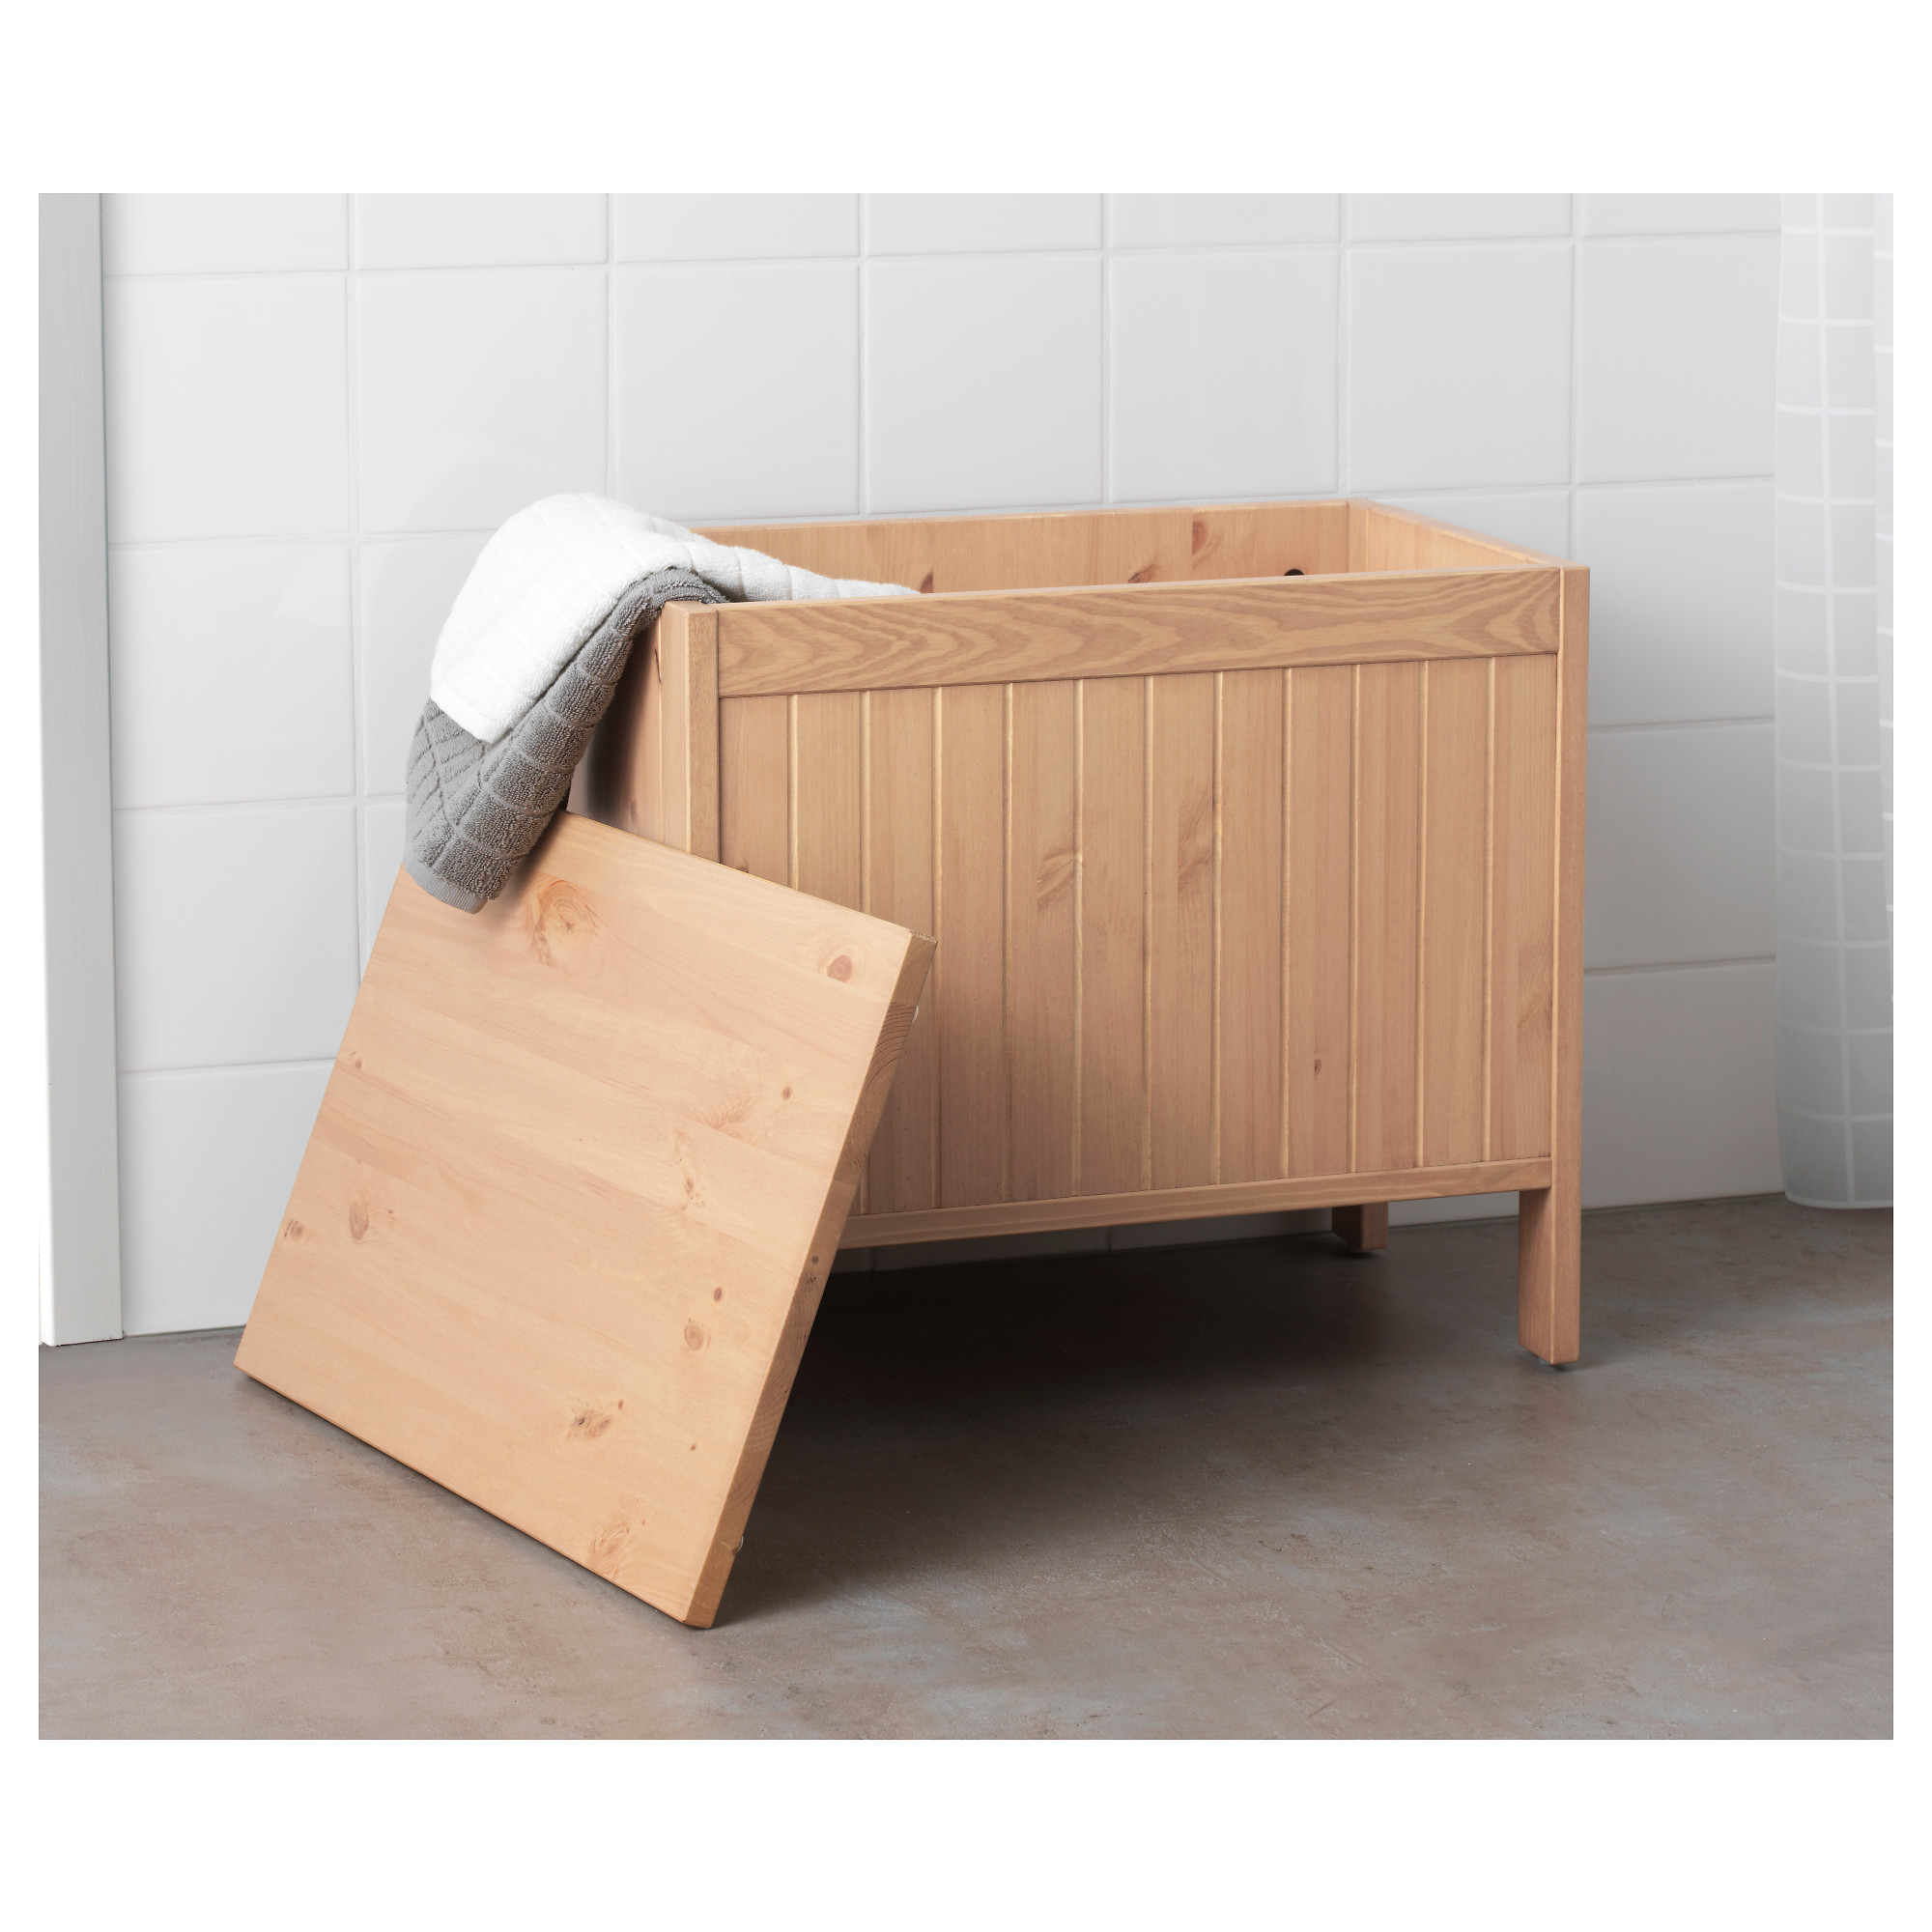 Wooden Storage Bench Ikea Storage Bench Also With Wooden Storage Bench Also With